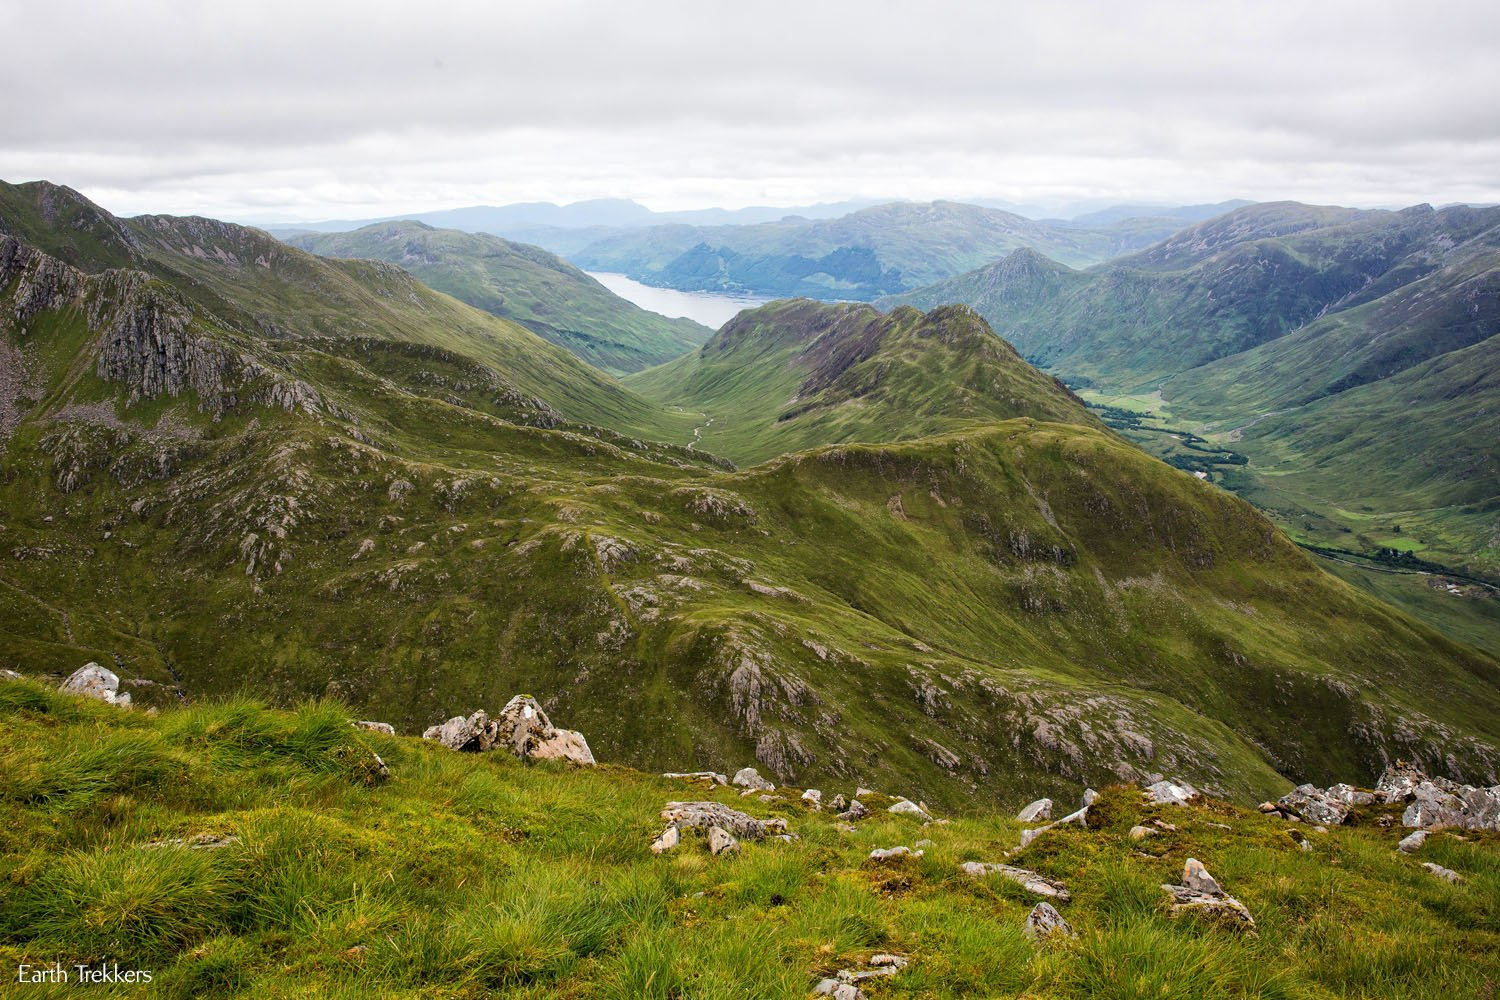 Hike Kintail Saddle